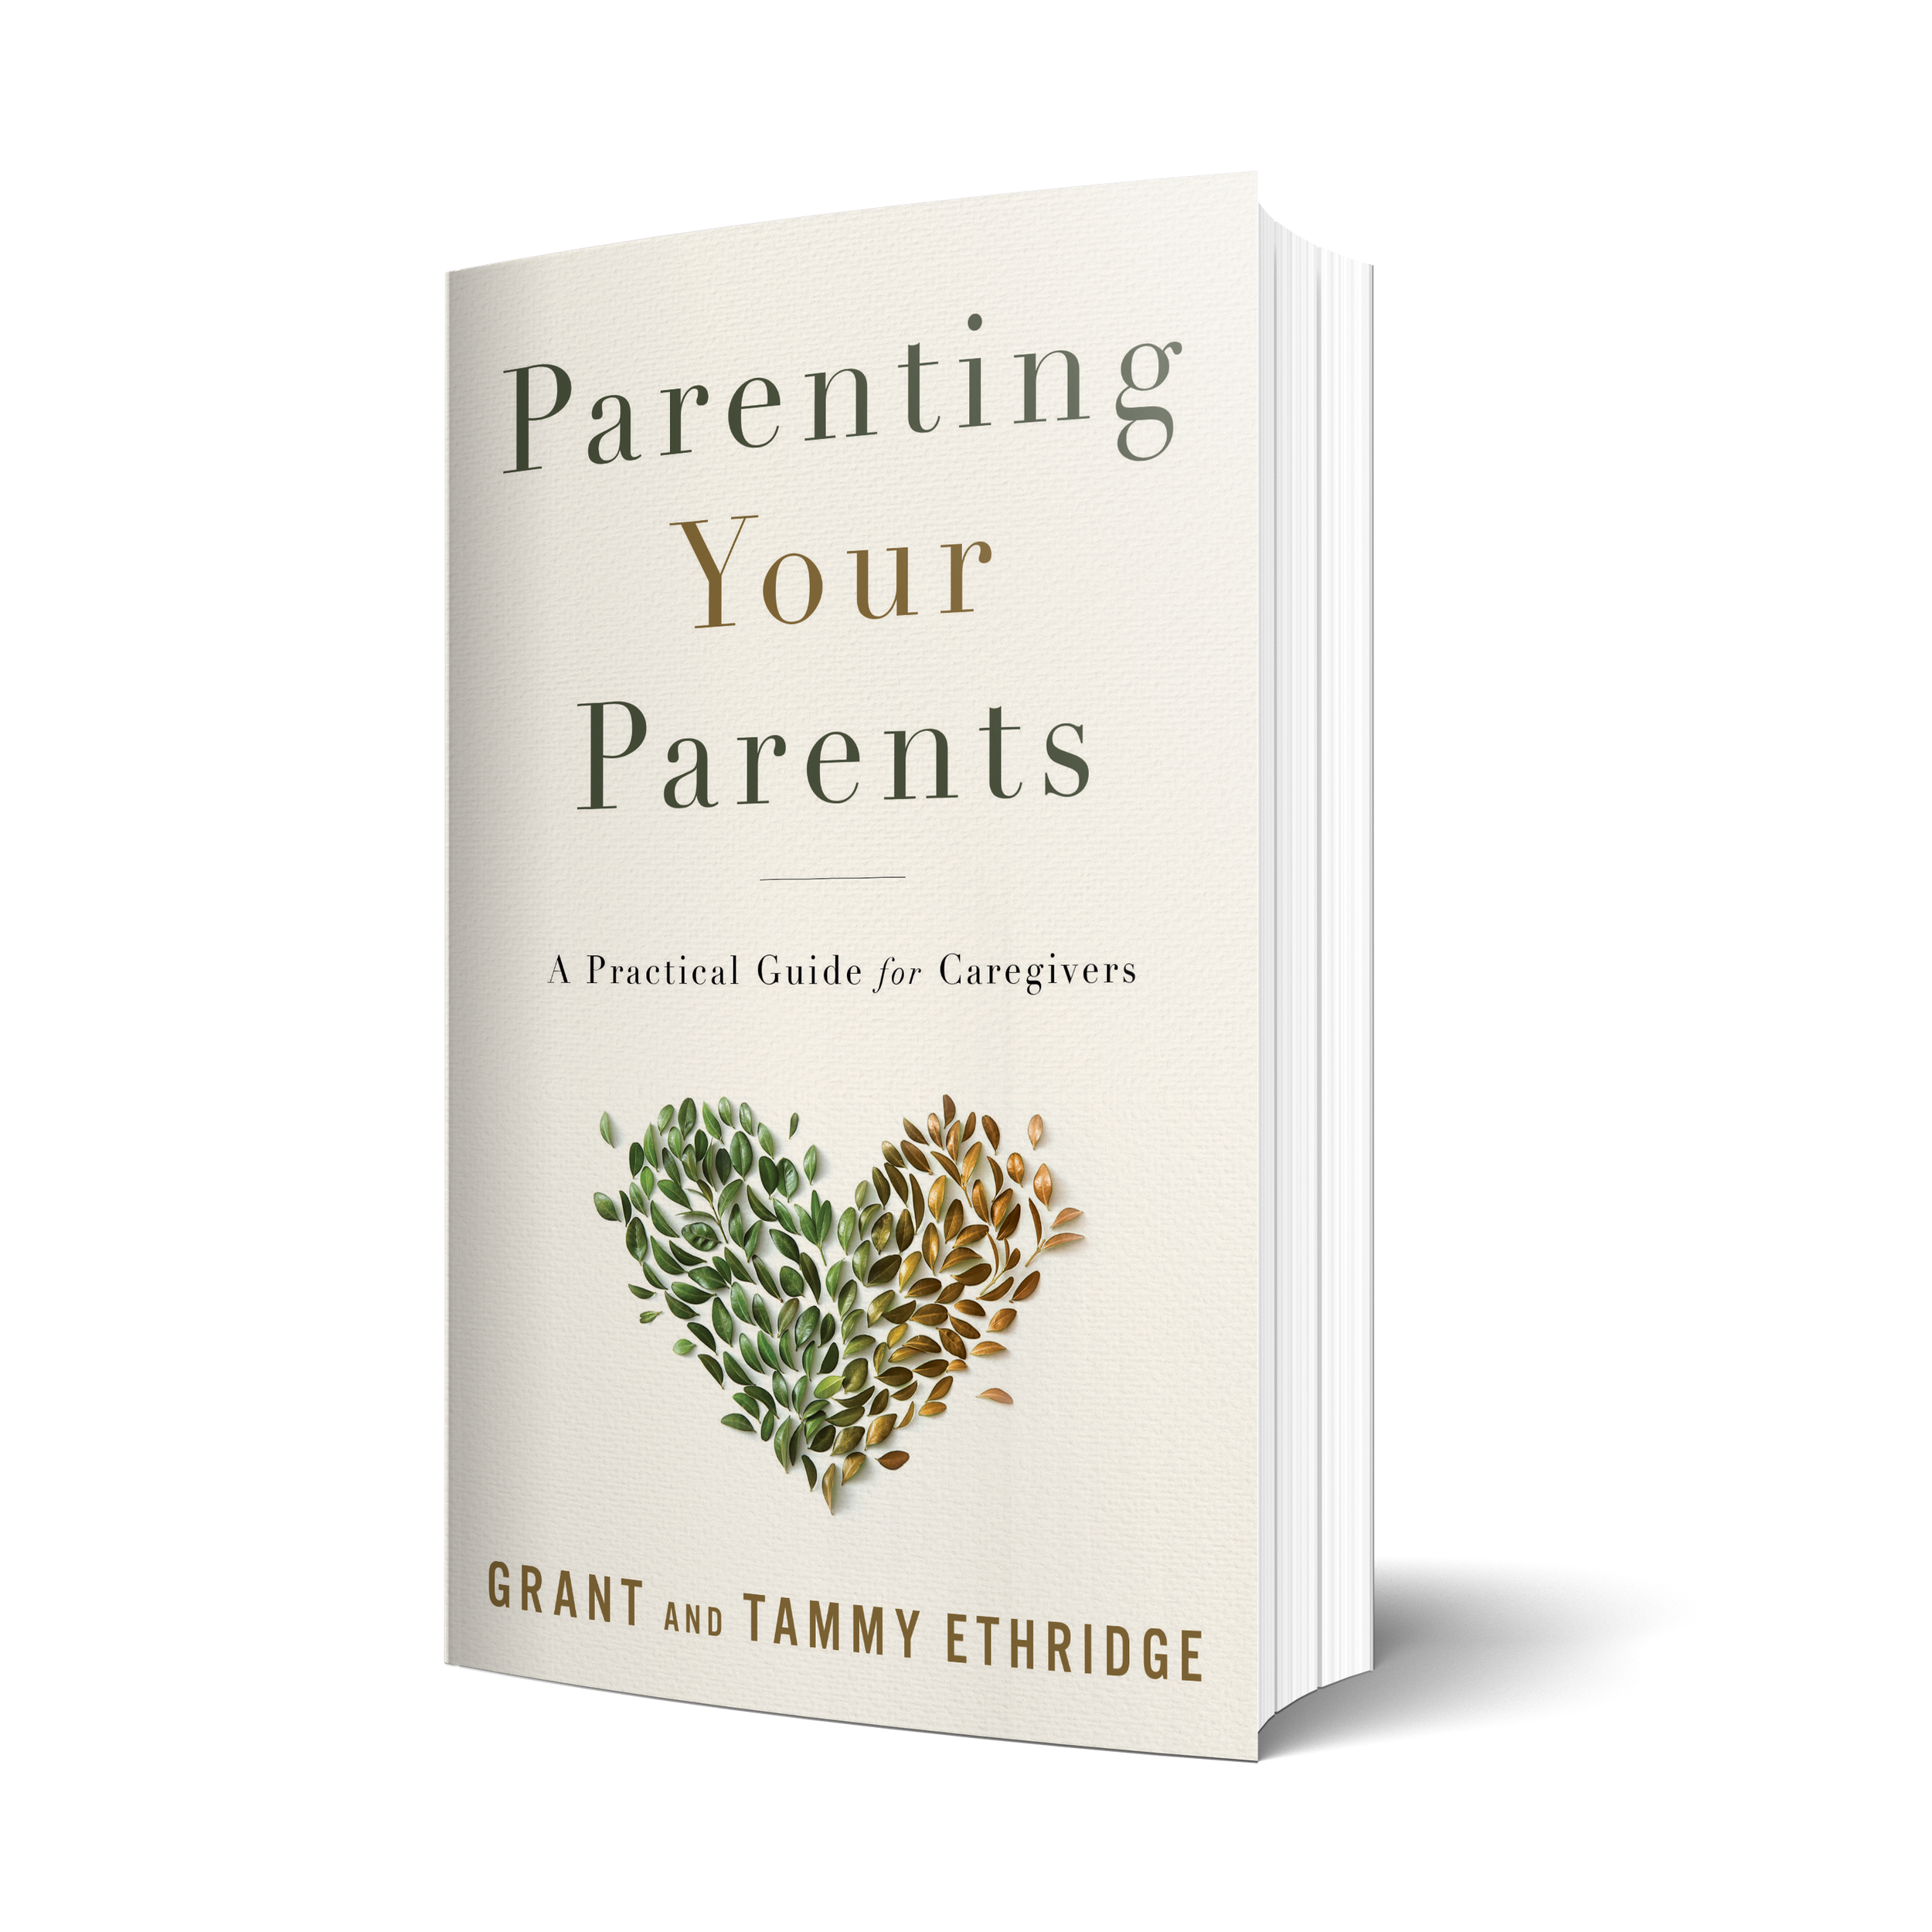 Parenting-Your-Parents-Book-Mock-Up.png